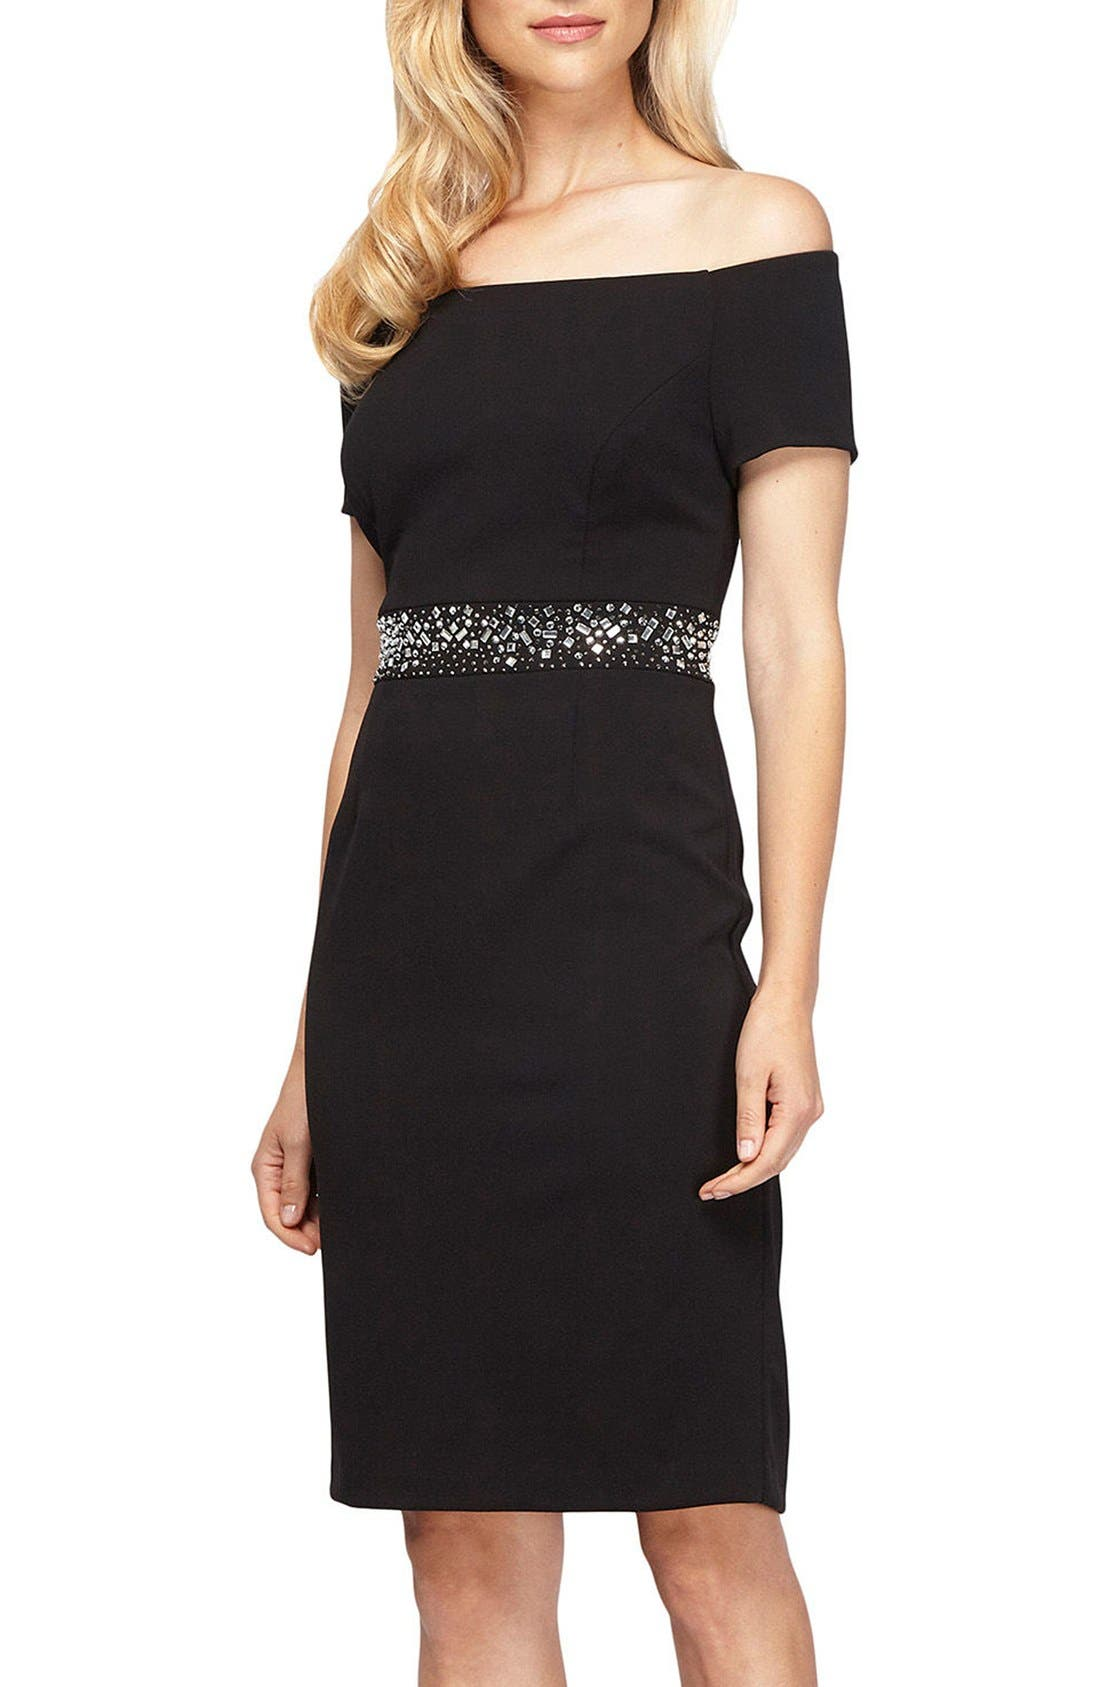 Alternate Image 1 Selected - Alex Evenings Embellished Stretch Dress